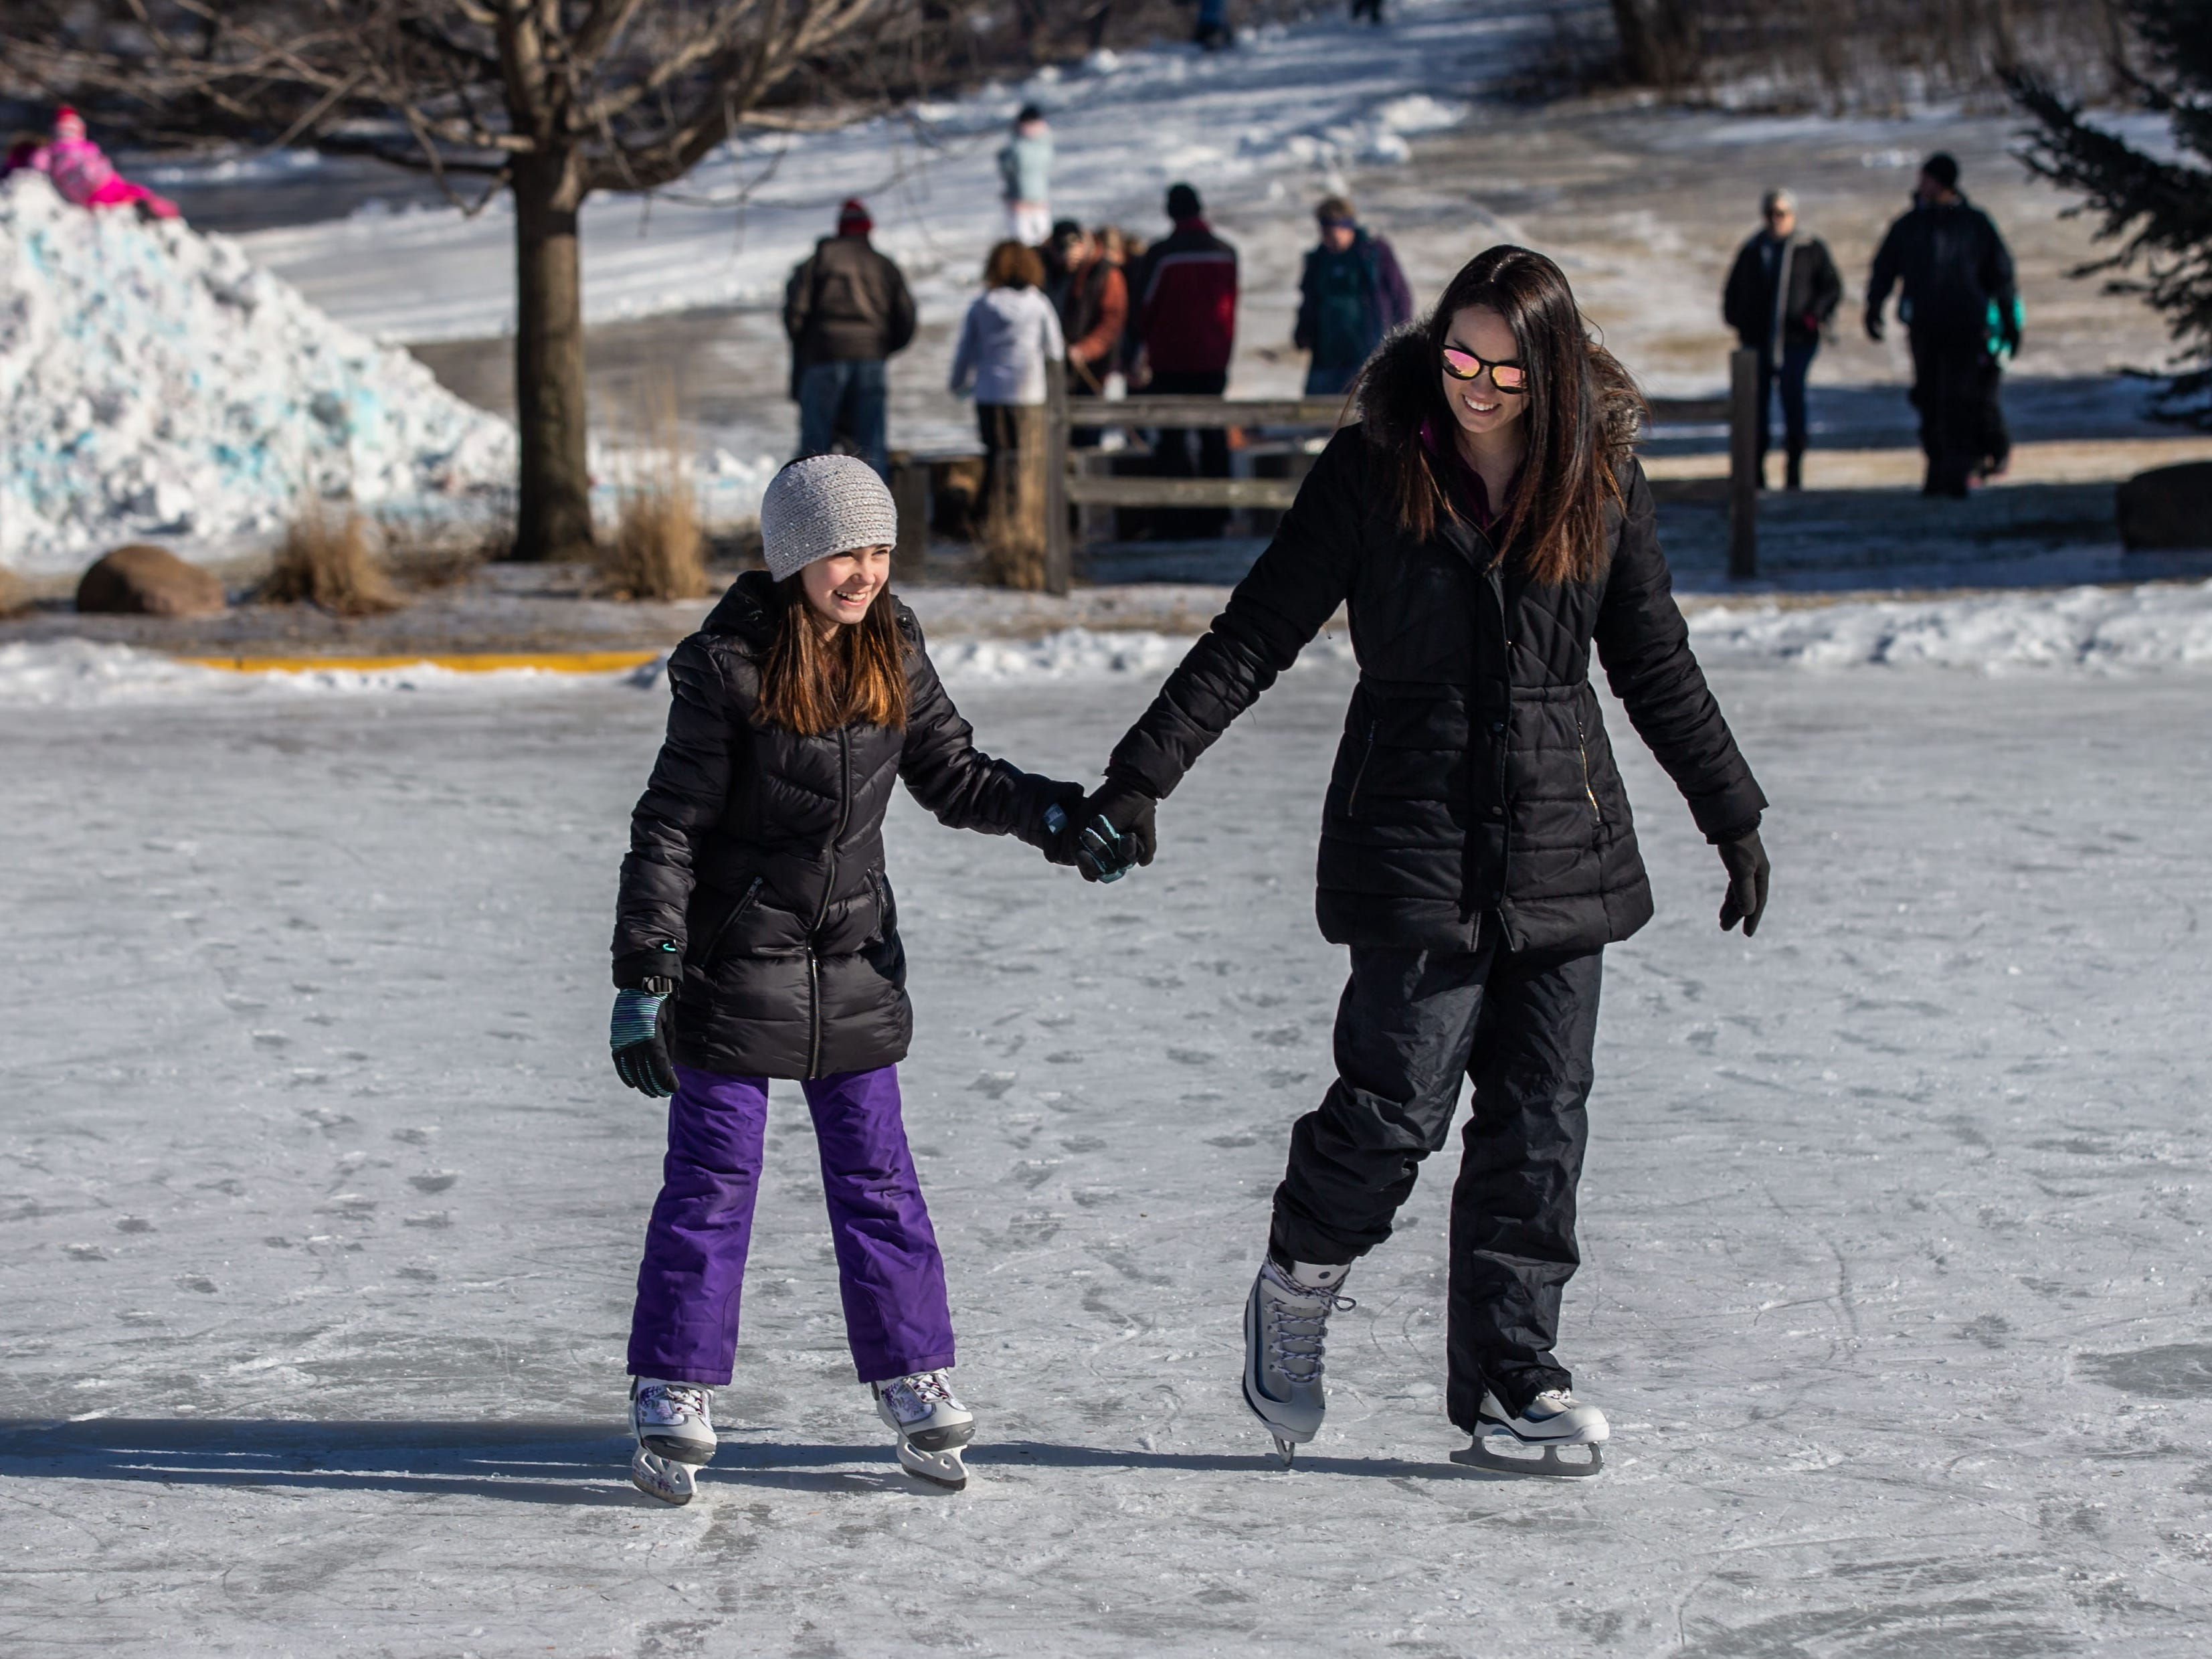 Aubri Schaefer, 9, of Lisbon skates with her mother Sarah during the annual Winterfest at Lisbon Community Park on Saturday, Feb. 9, 2019. The free event includes ice skating, sledding, skiing, a bonfire, a warming tent with free refreshments, hot dogs and s'mores.